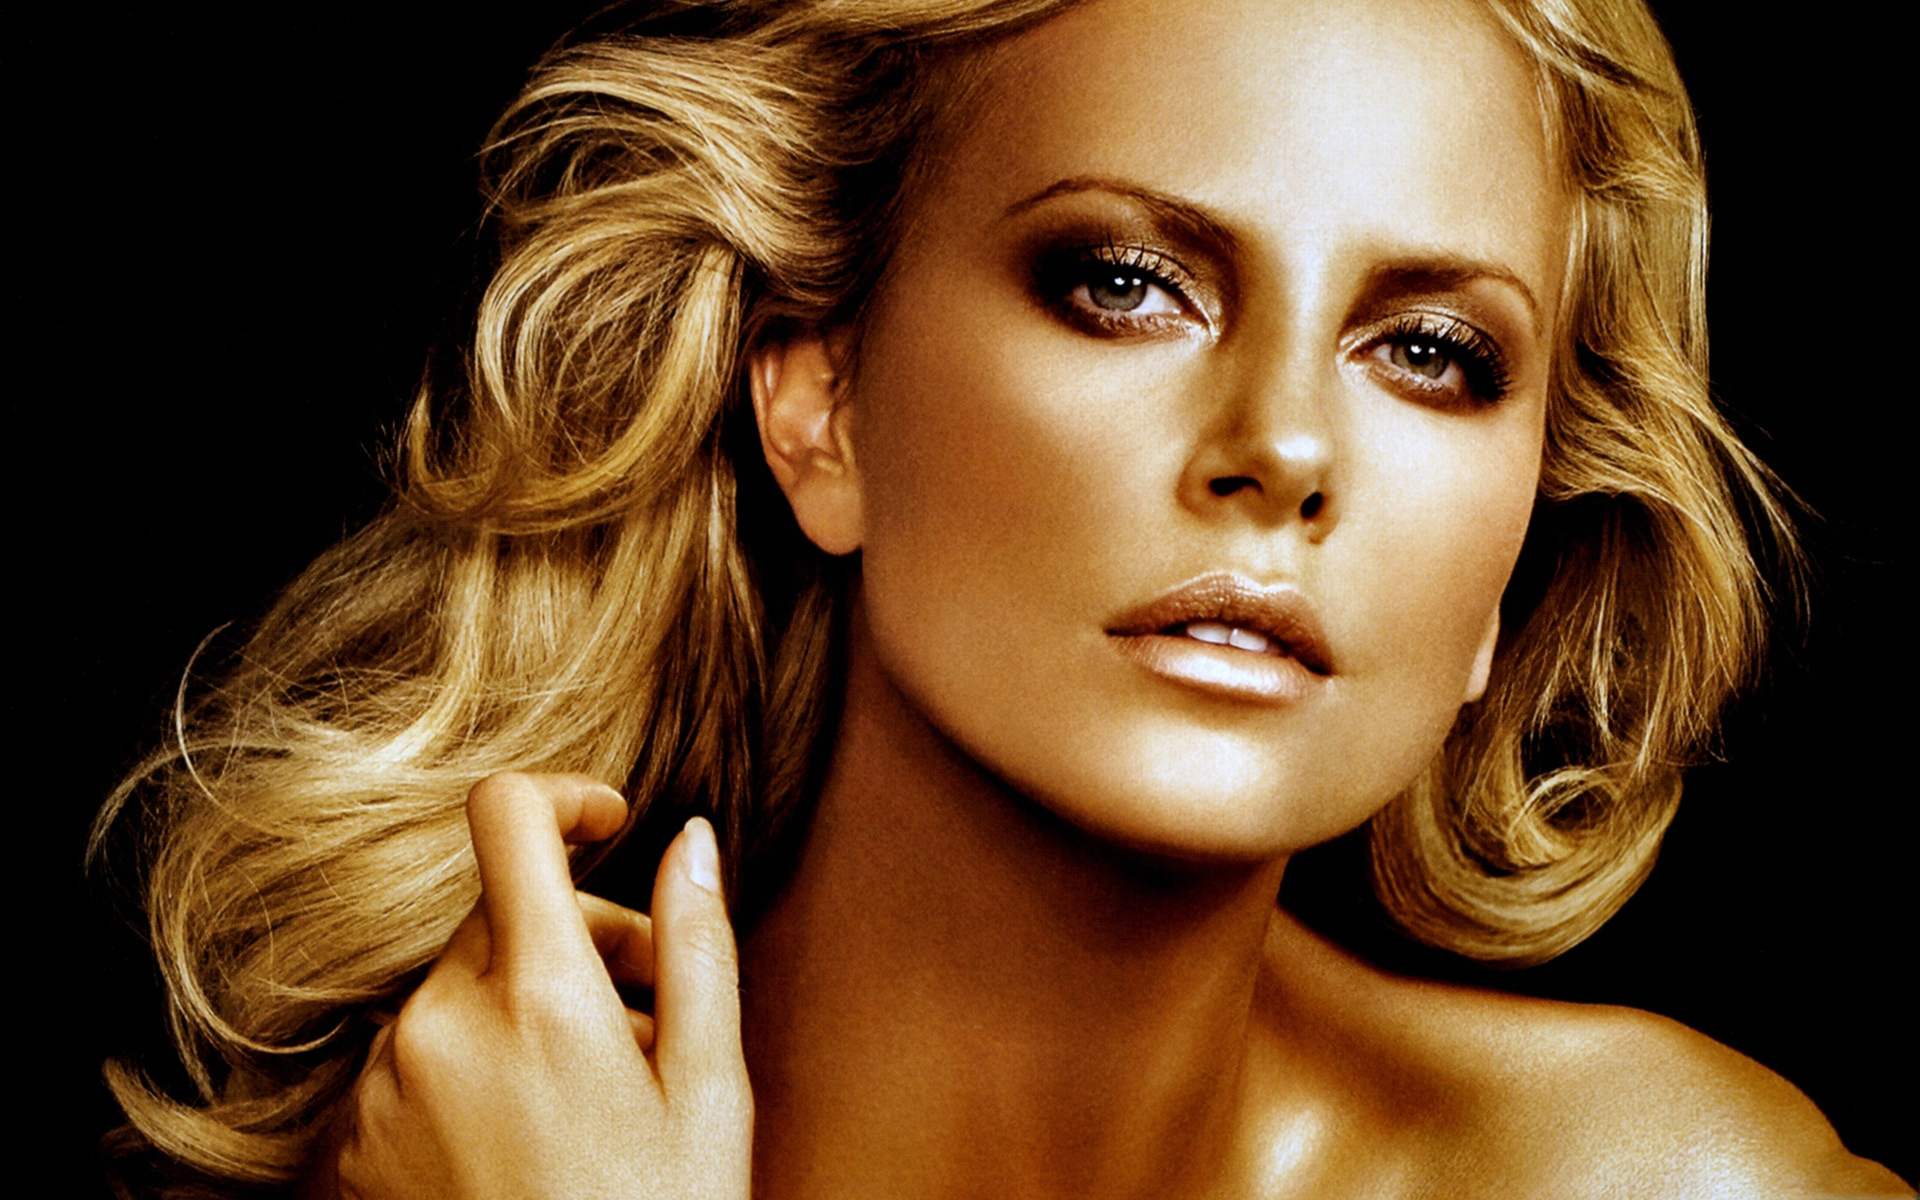 Charlize Theron Unseen Photos - Facebook Cover - PoPoPics.com Charlize Theron